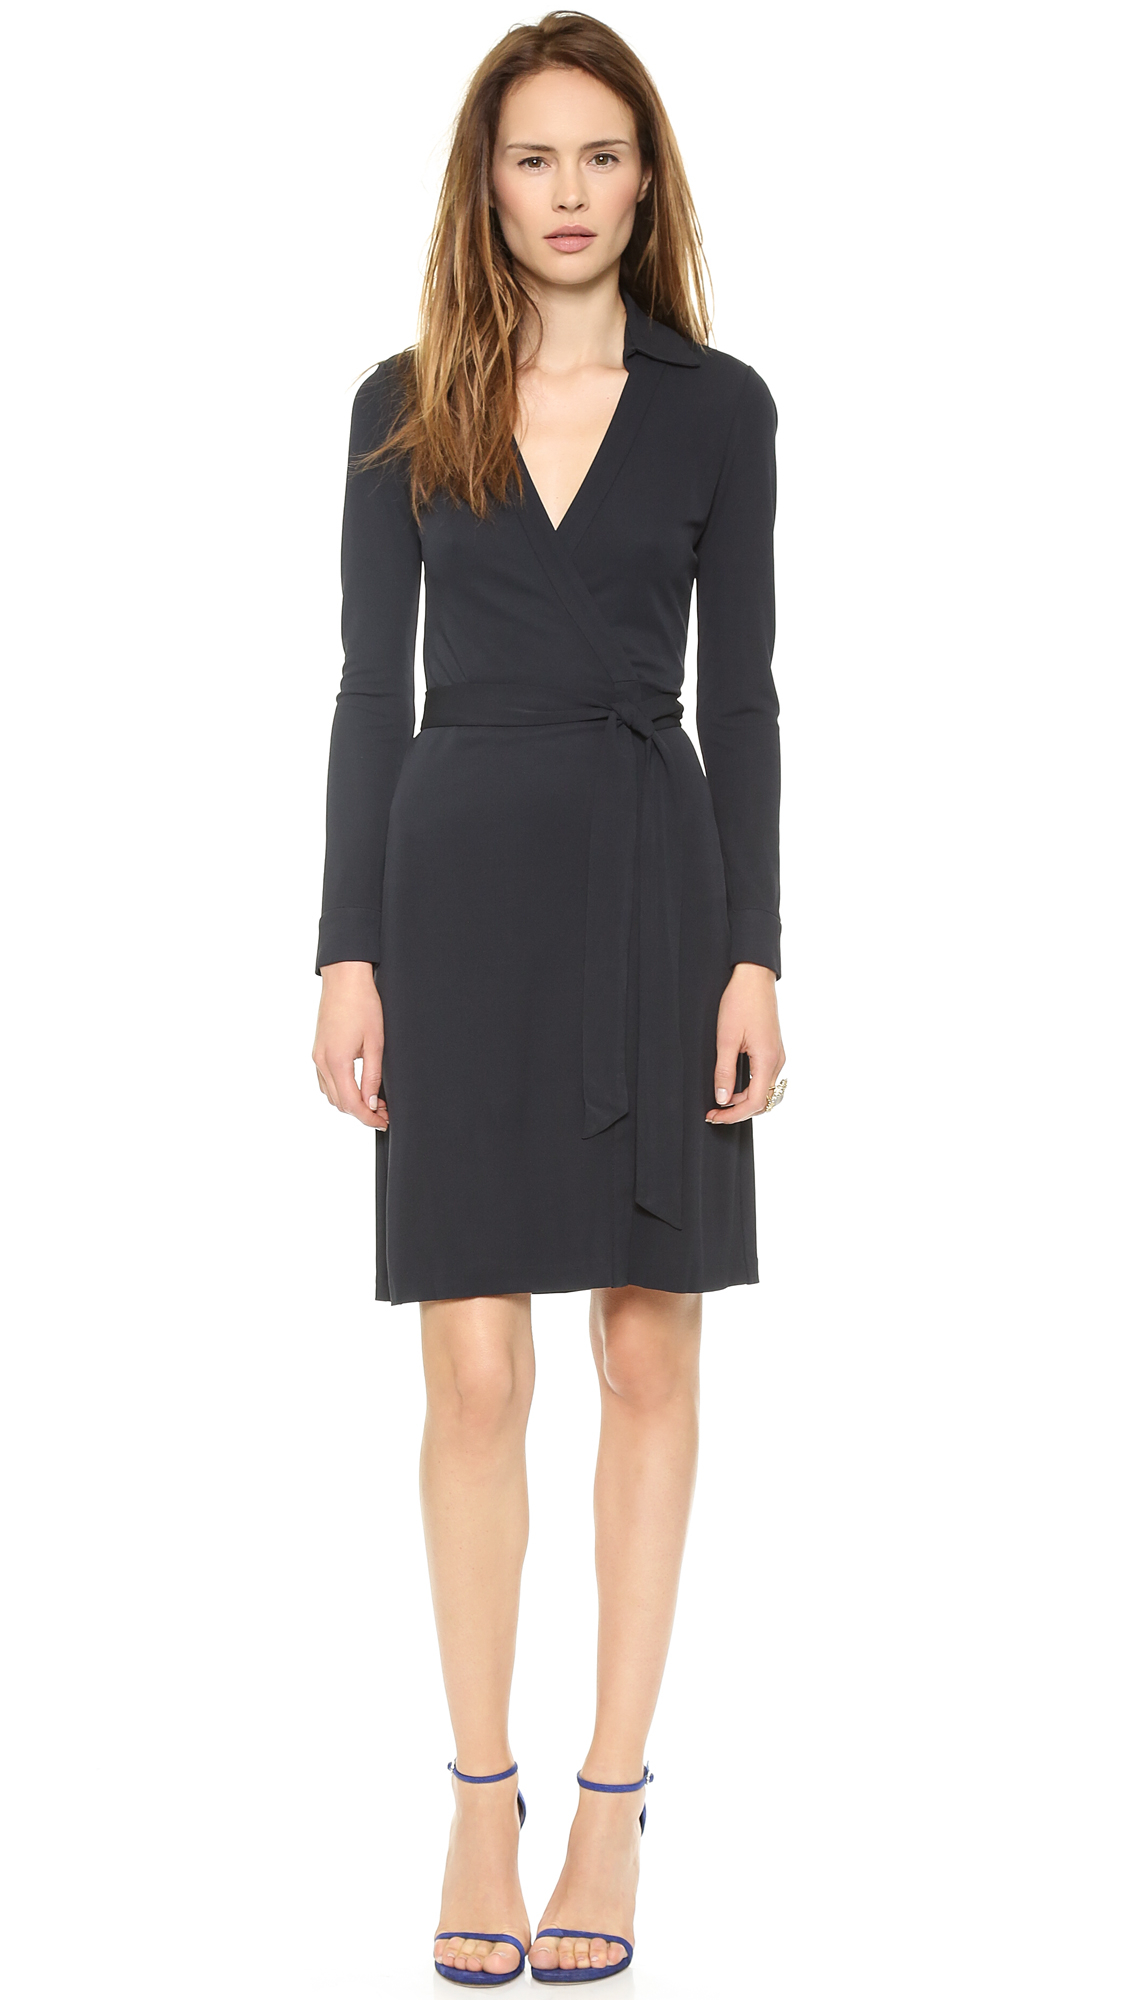 Diane von furstenberg new jeanne two wrap dress navy in for Diane von furstenberg clothes